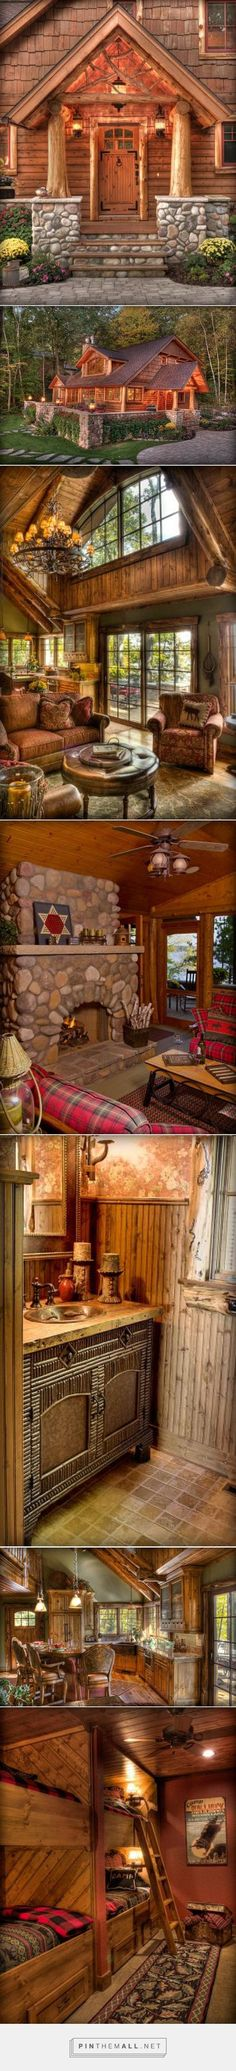 This house is ticking off all the boxes for me in what I want in a log home. - collage created via http://pinthemall.net: